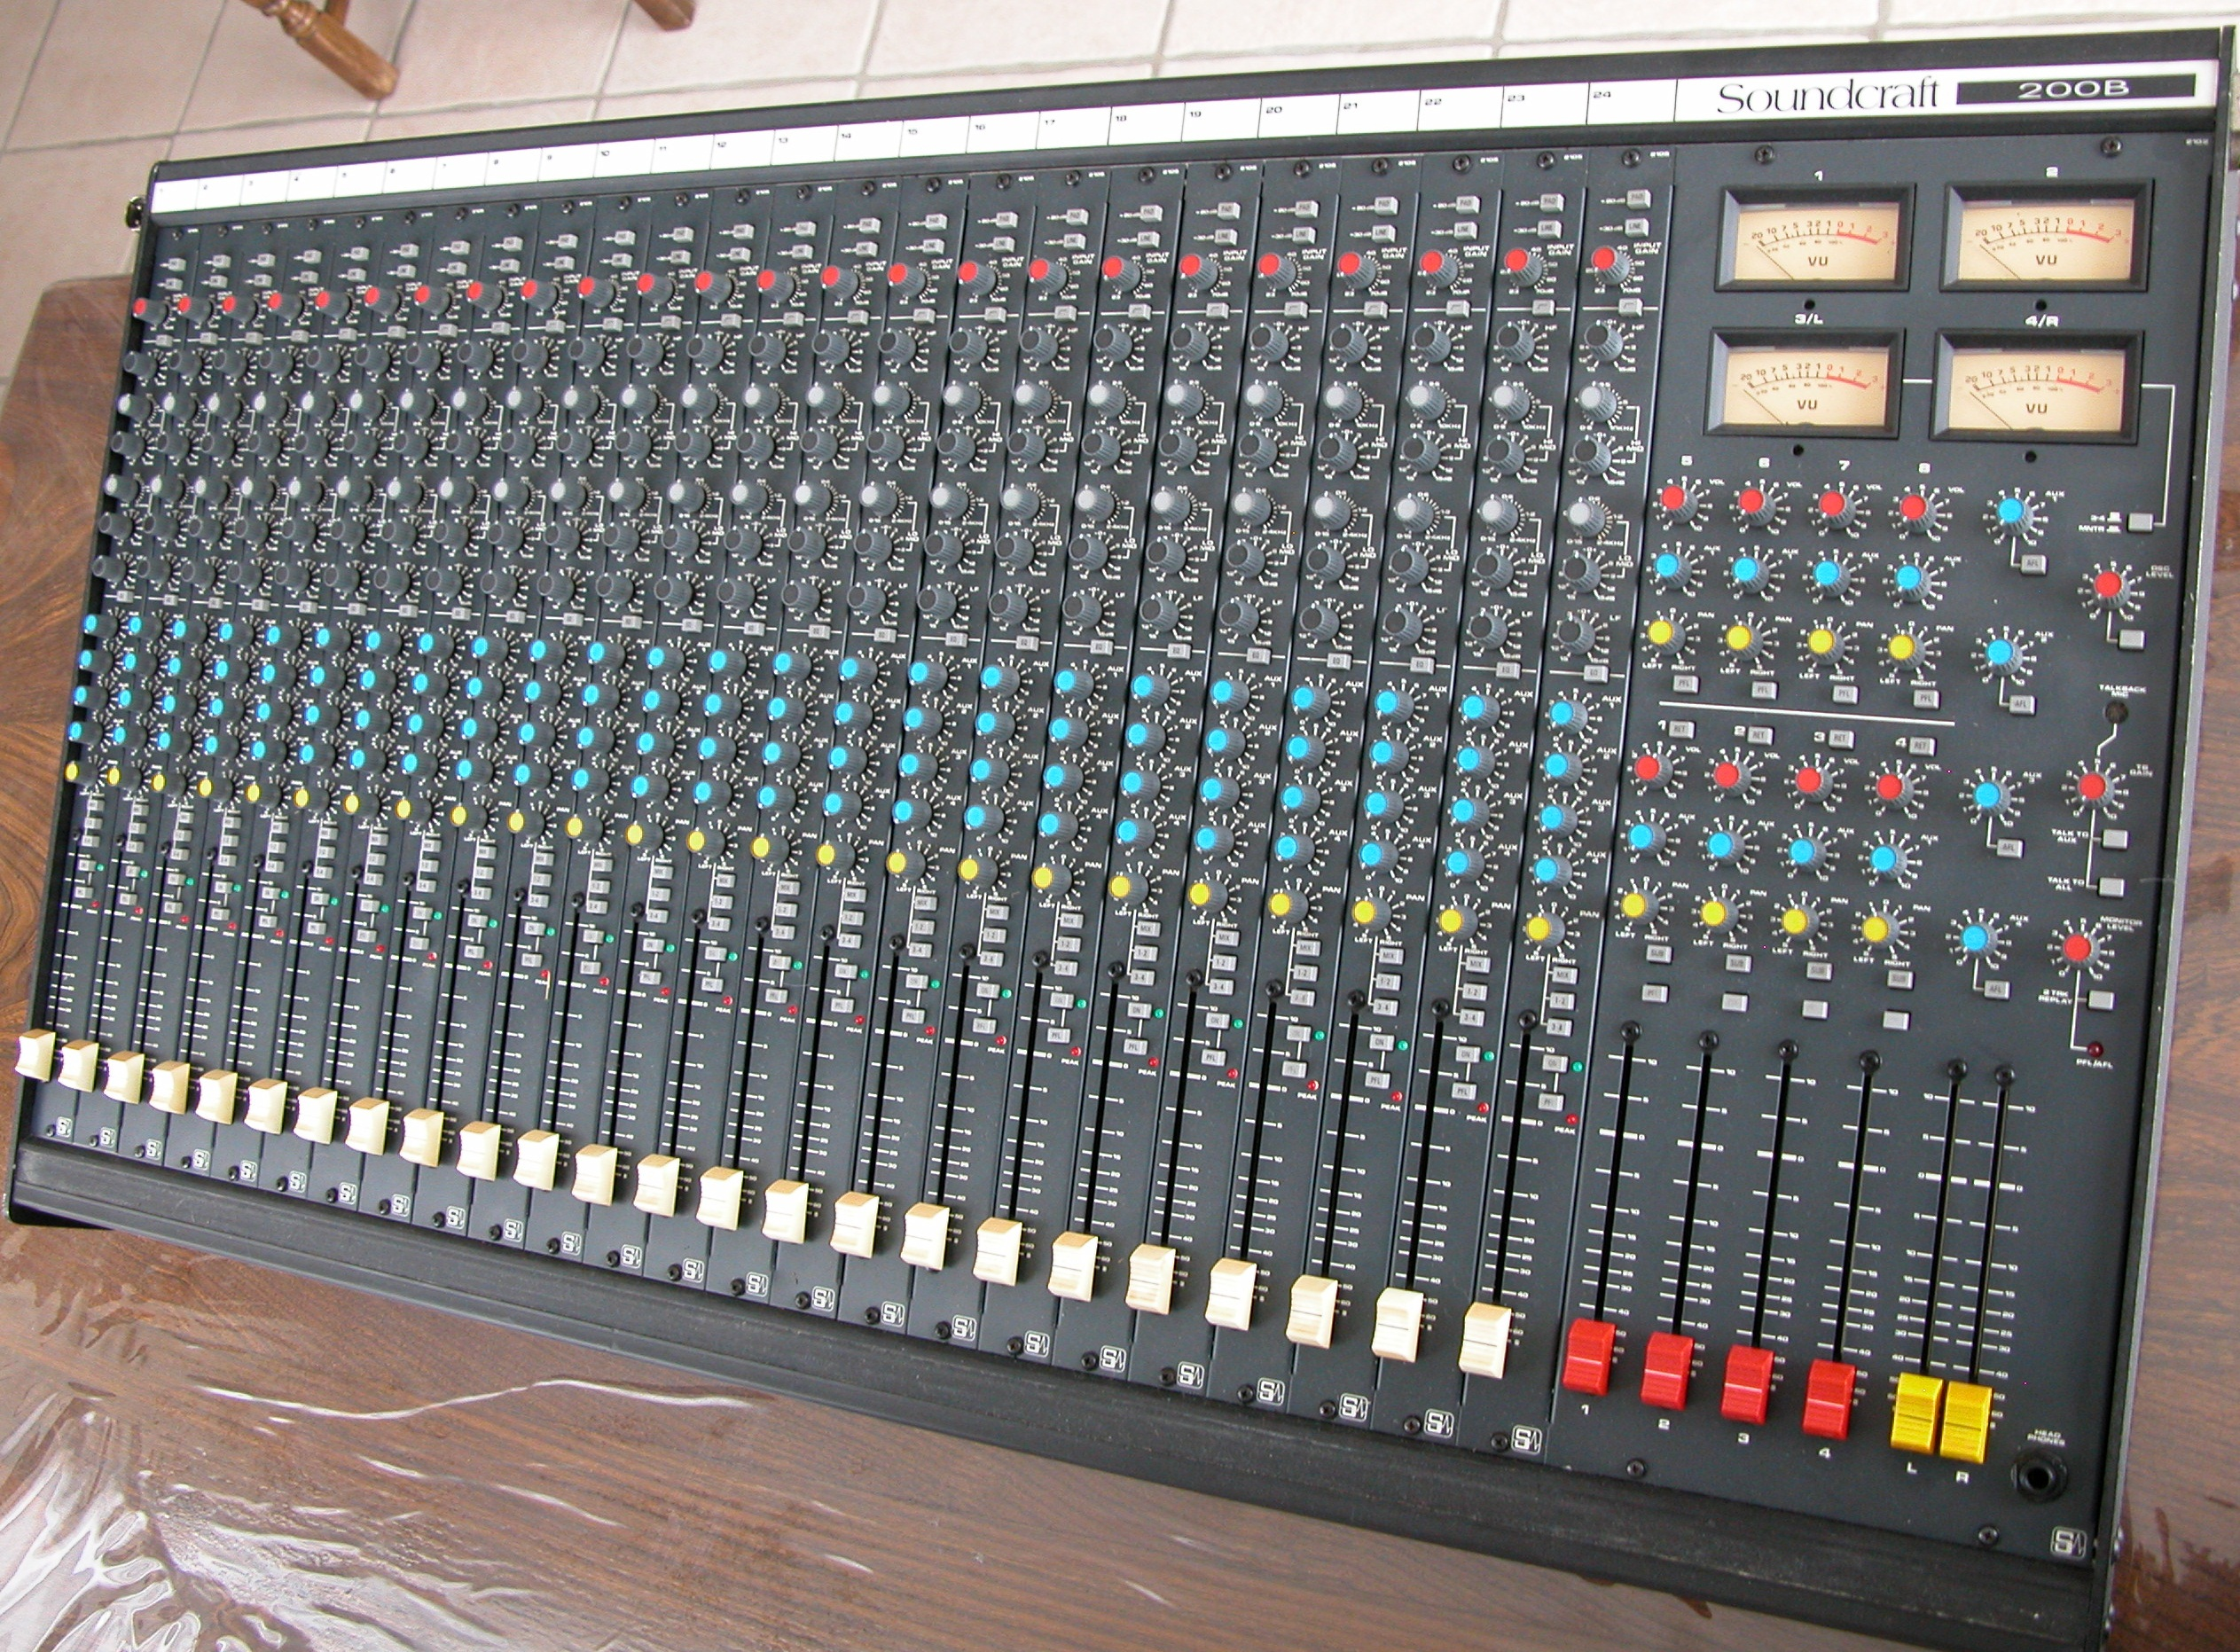 Table De Mixage Numérique Occasion Table De Mixage Soundcraft Occasion